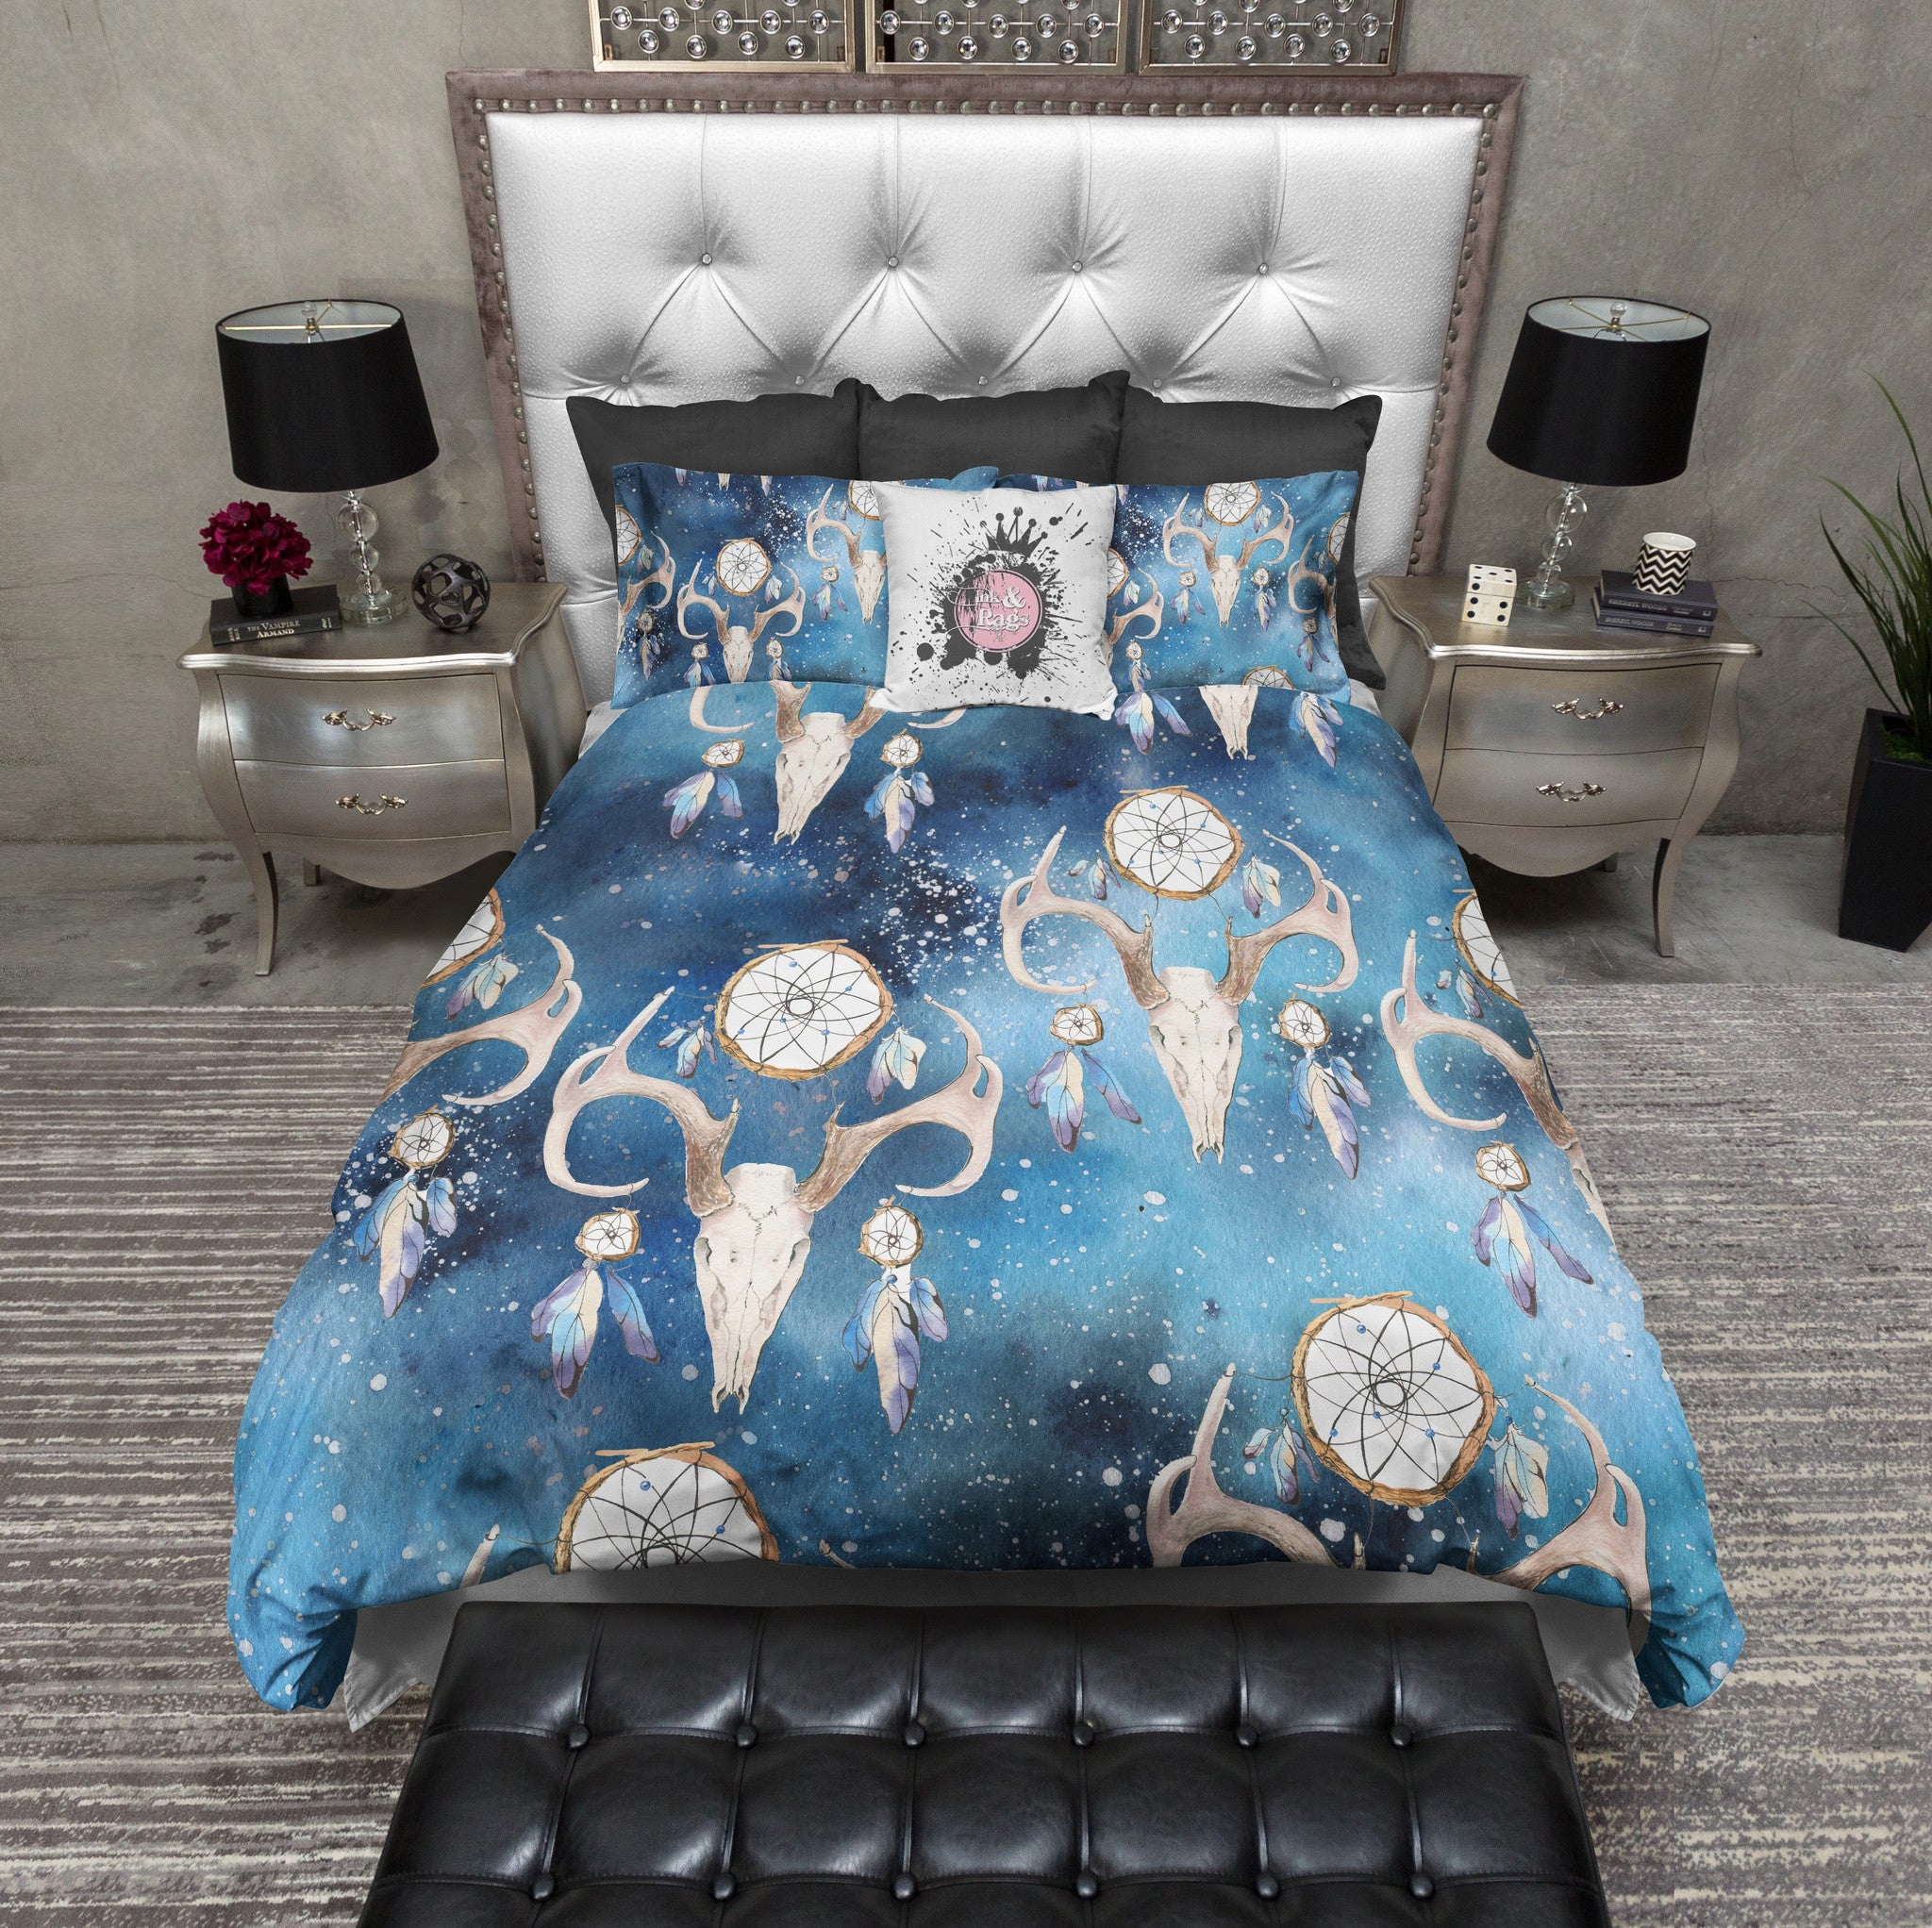 gypsy skull and boho dreamcatcher duvet and bedding sets - ink and